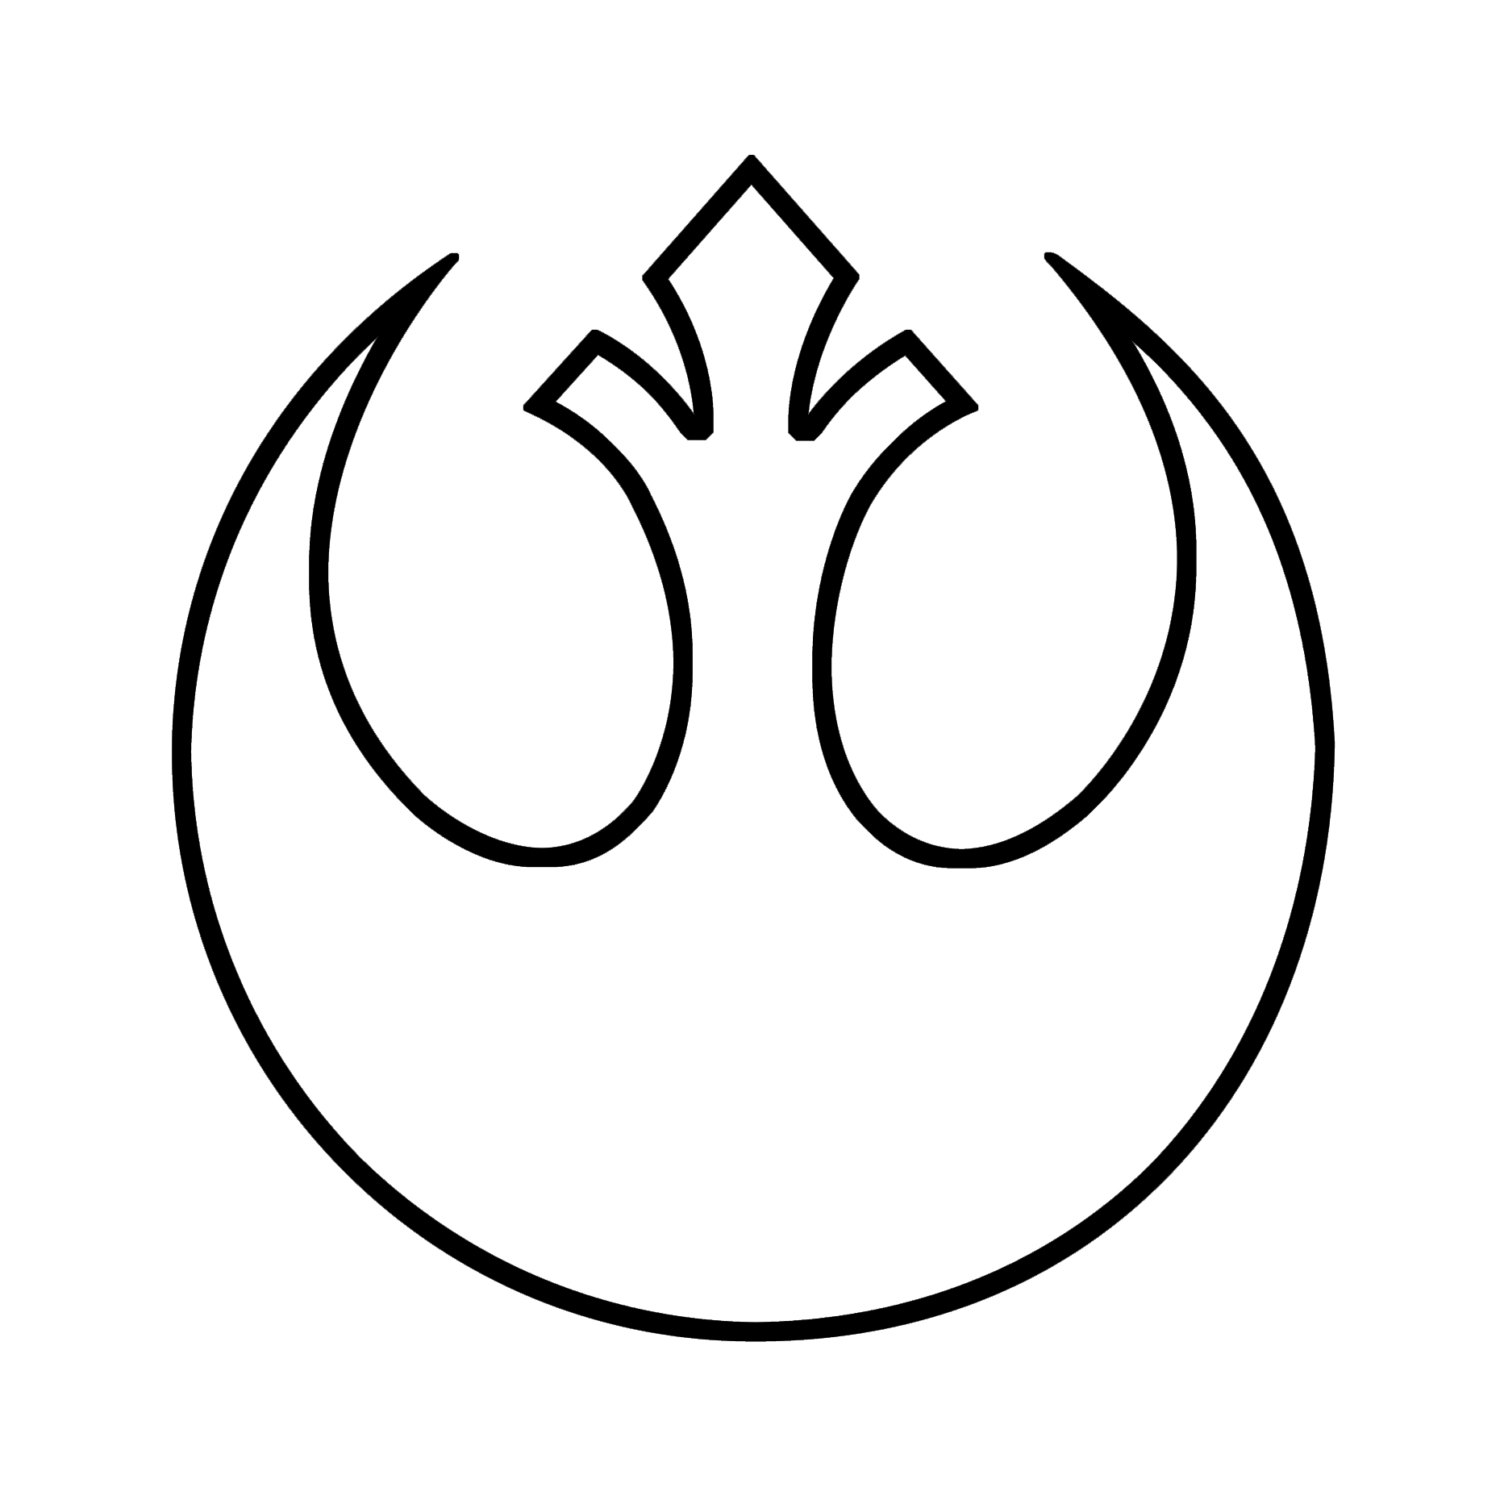 250 star wars logo latest star wars logo icon gif transparent png